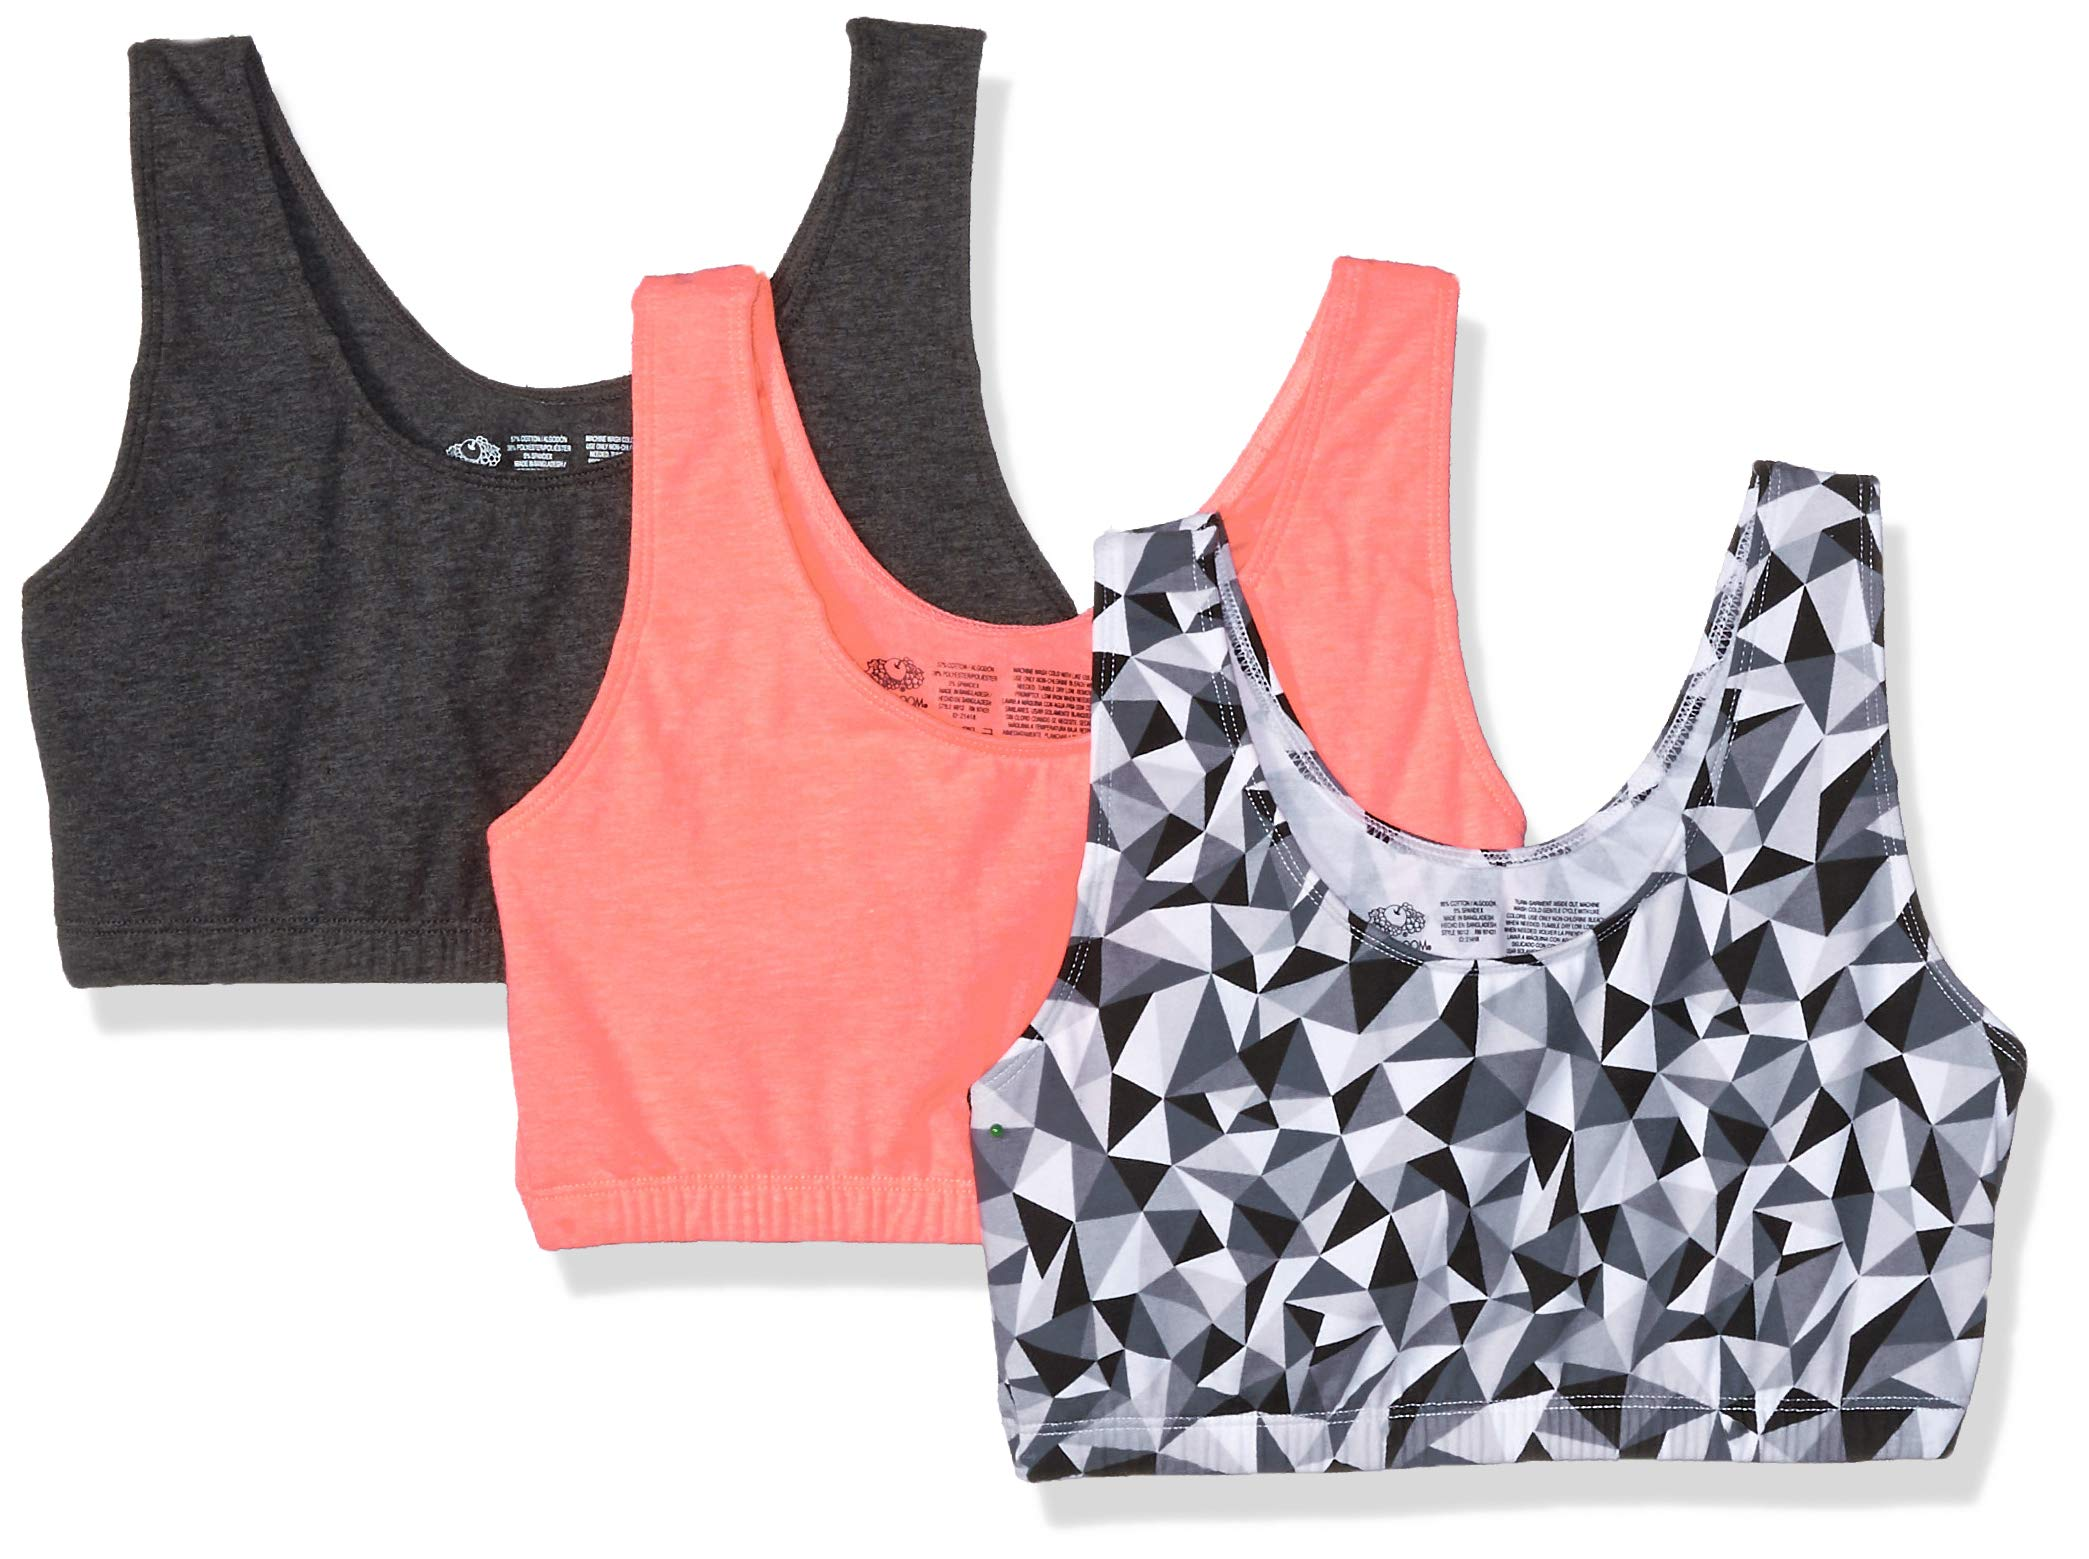 Fruit of the Loom Women's Built-Up Sports Bra 3 Pack Bra, Kaleidoscope/Charcoal/Punchy Peach, 36 by Fruit of the Loom